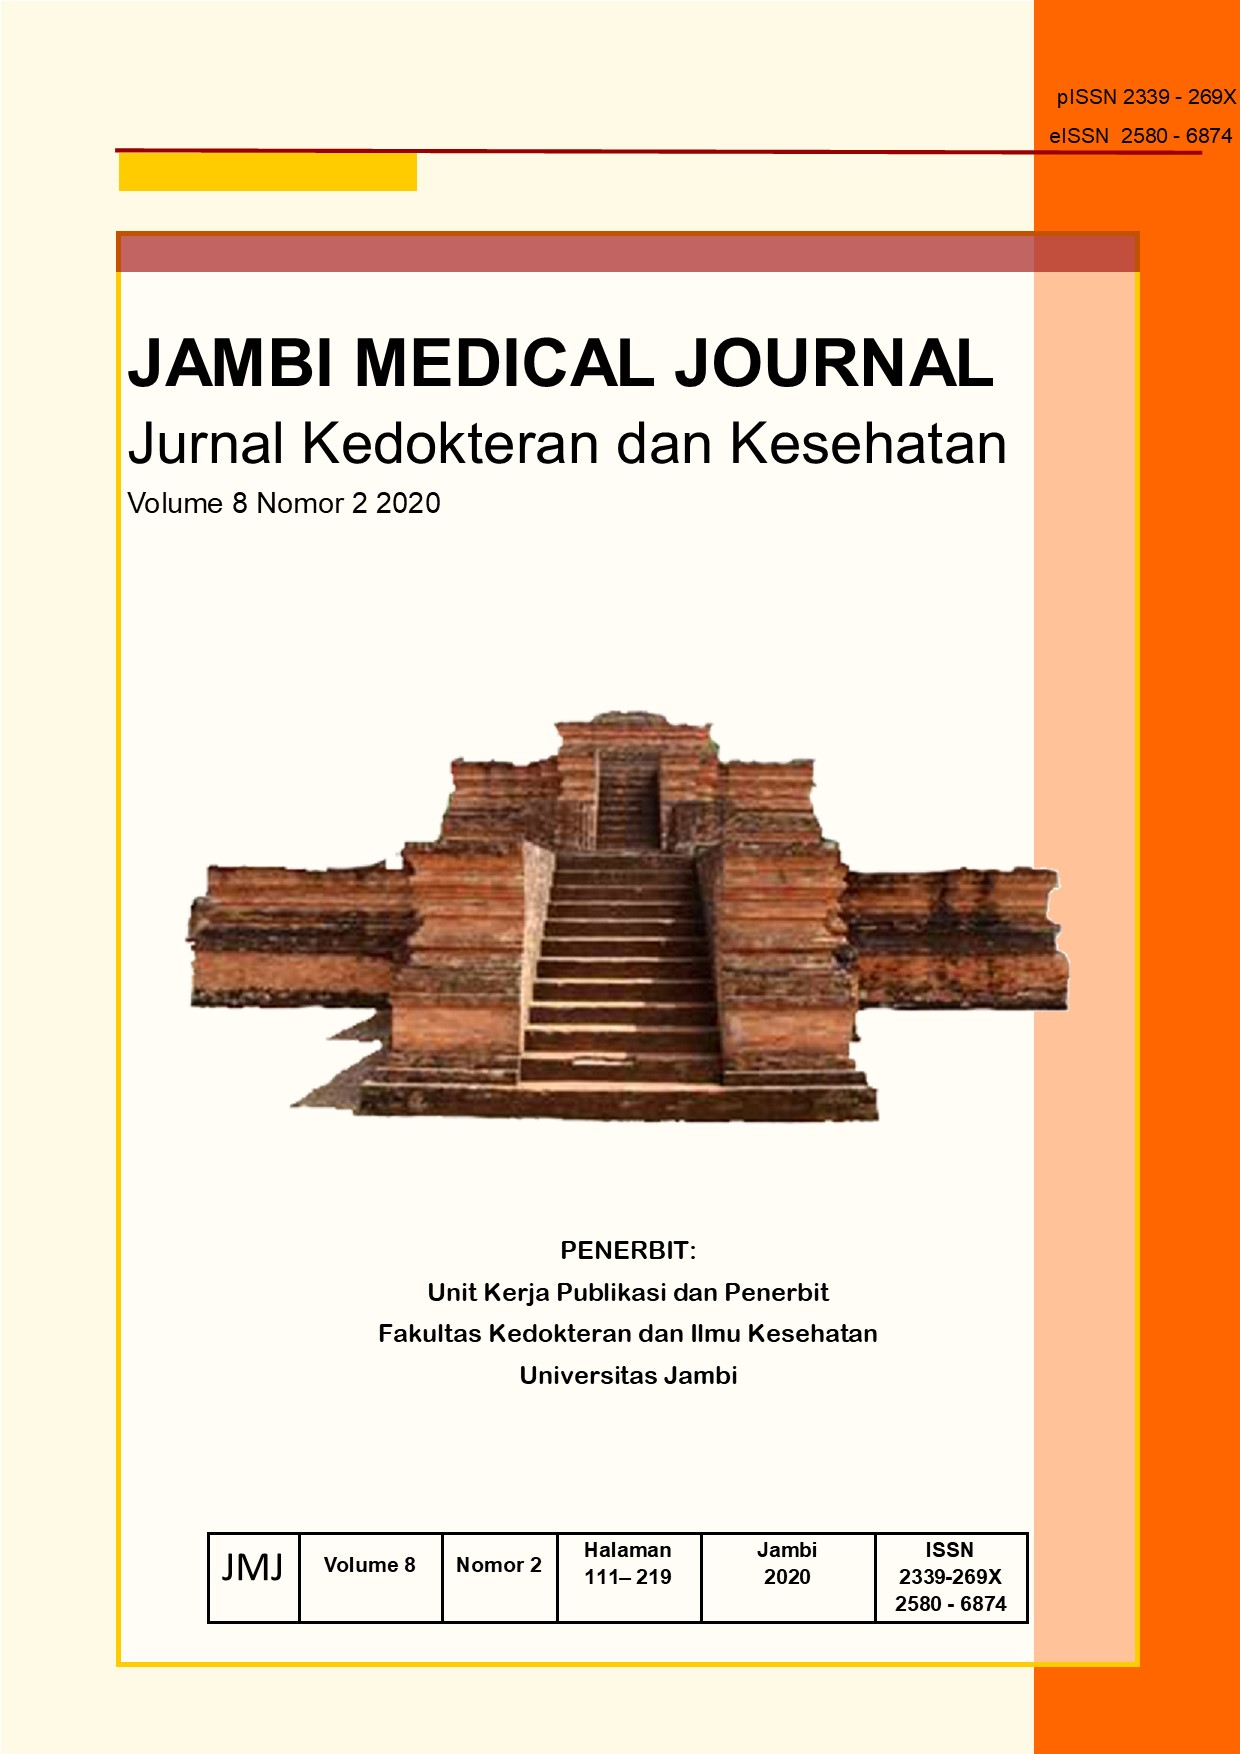 View Vol. 8 No. 2 (2020): JAMBI MEDICAL JOURNAL Jurnal Kedokteran Dan Kesehatan